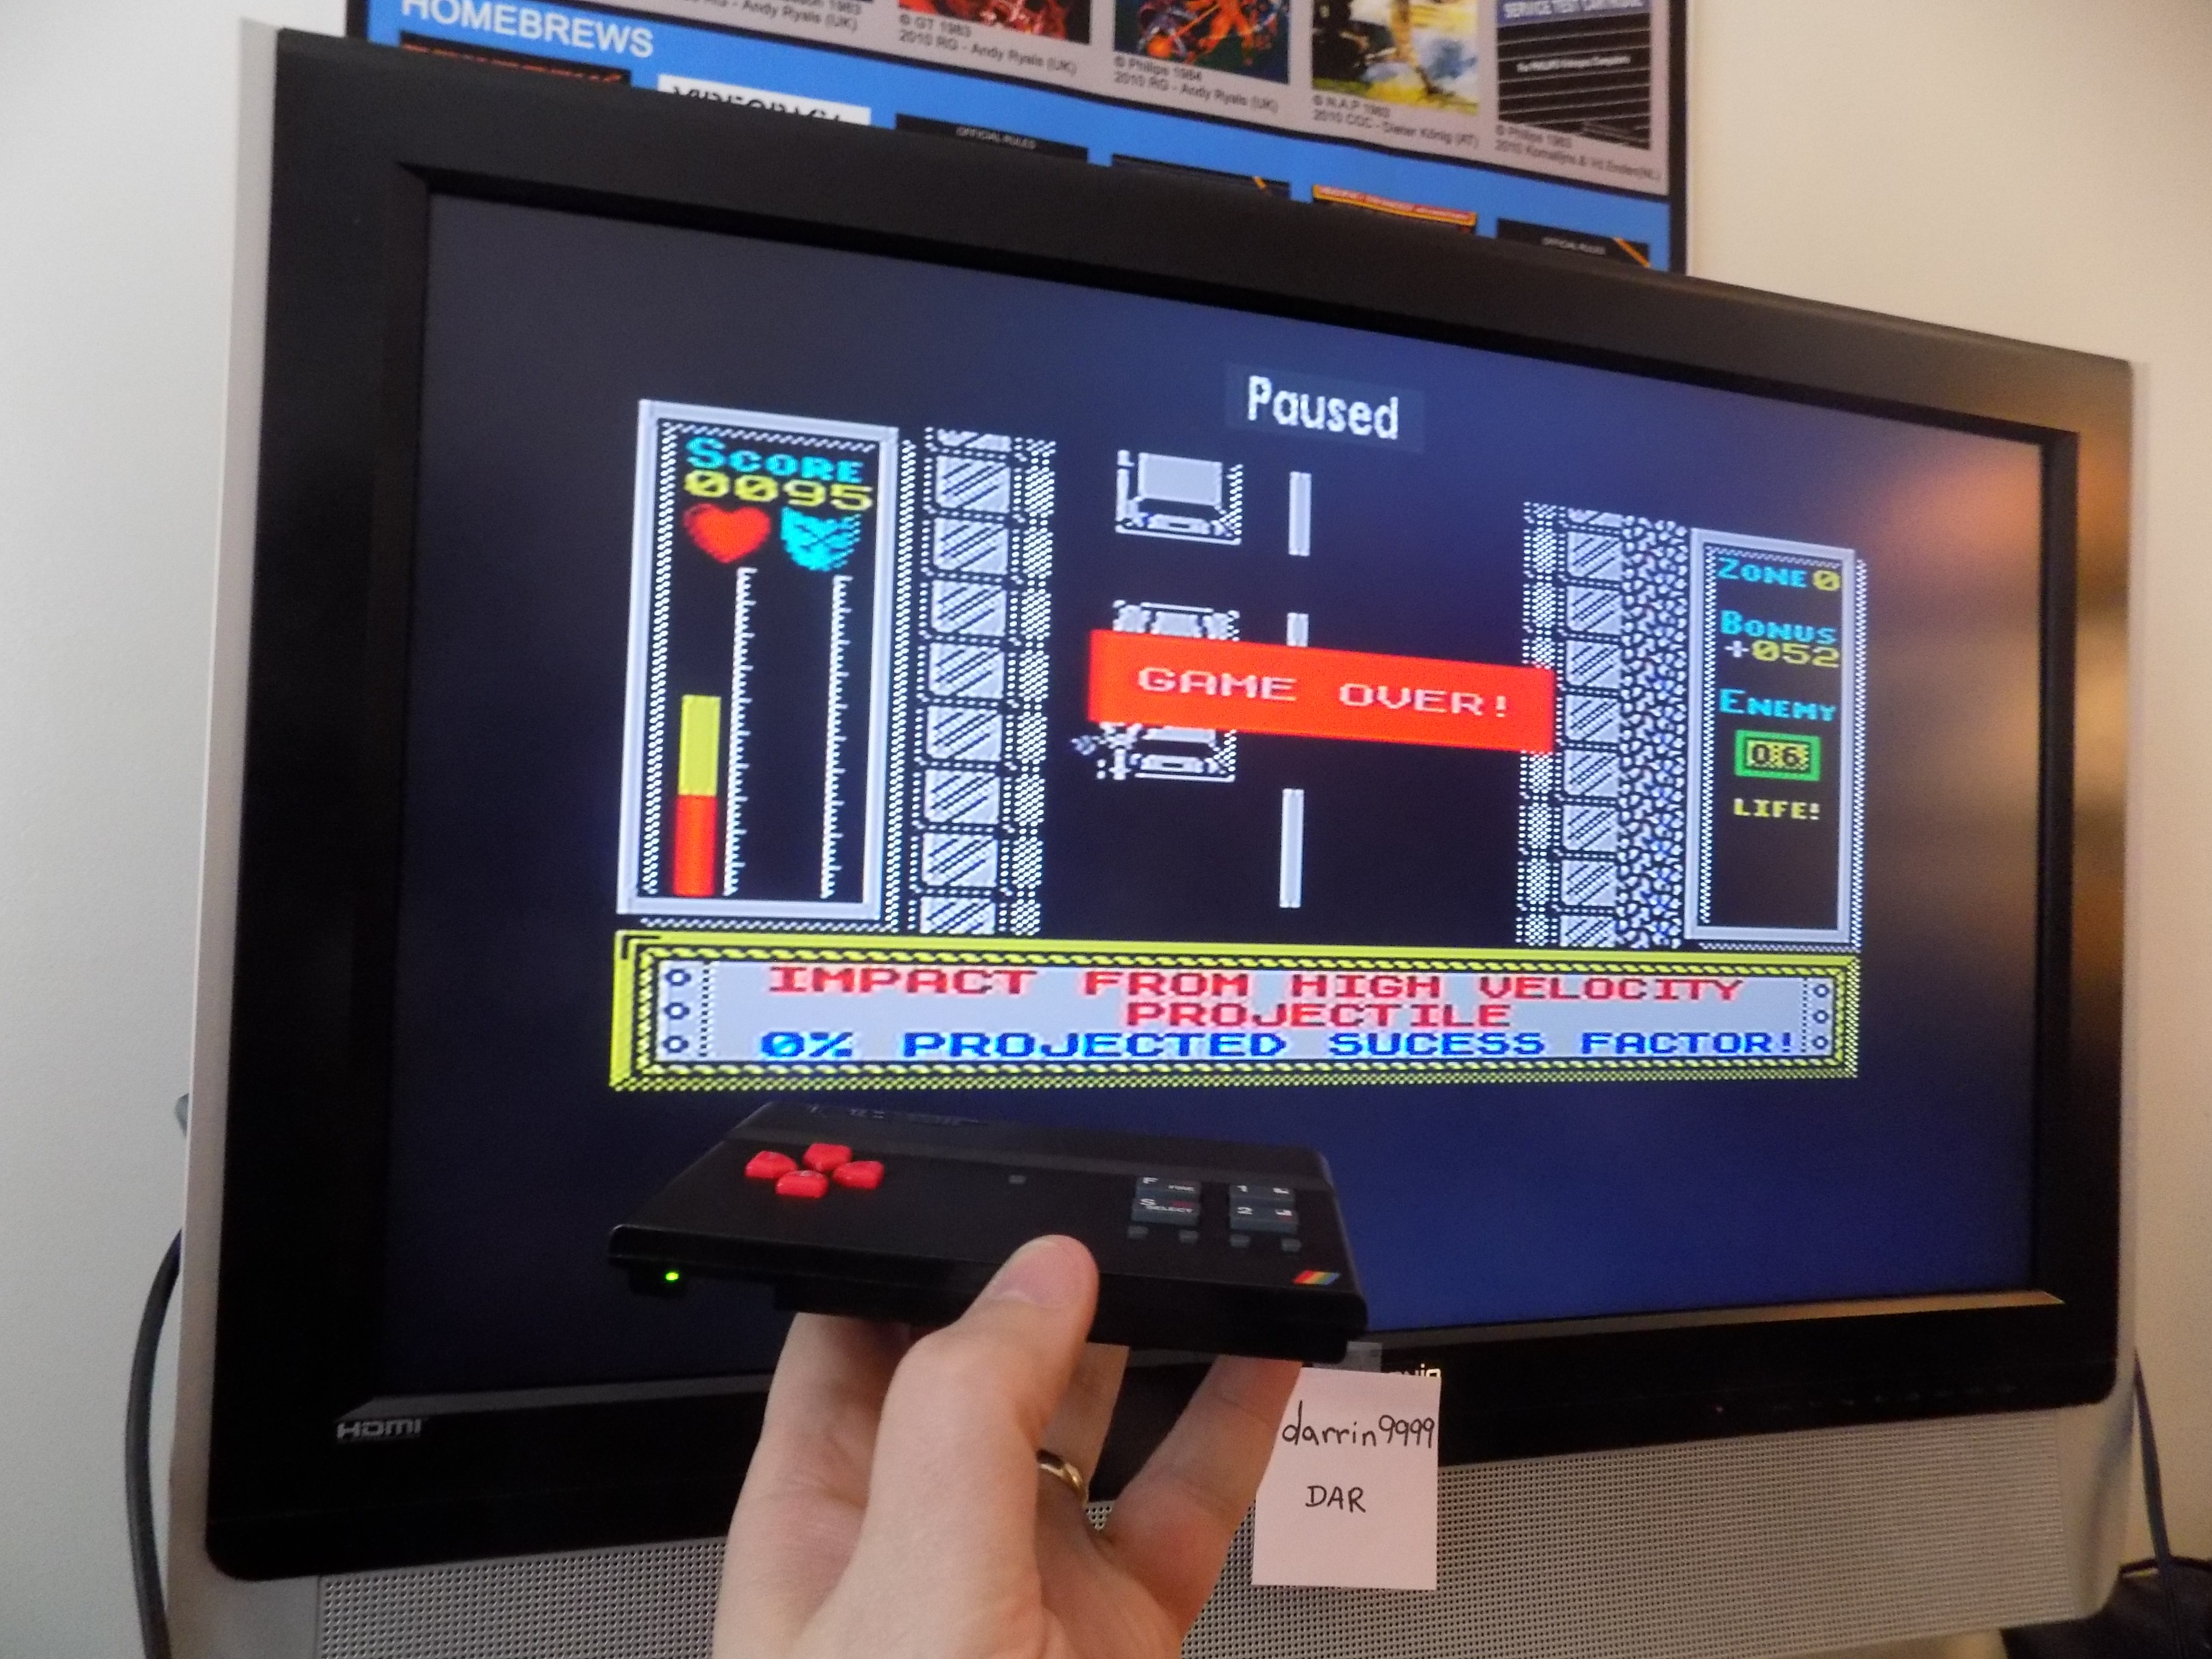 darrin9999: Stainless Steel [Easy Peesy] (ZX Spectrum Emulated) 95 points on 2017-02-26 22:17:20